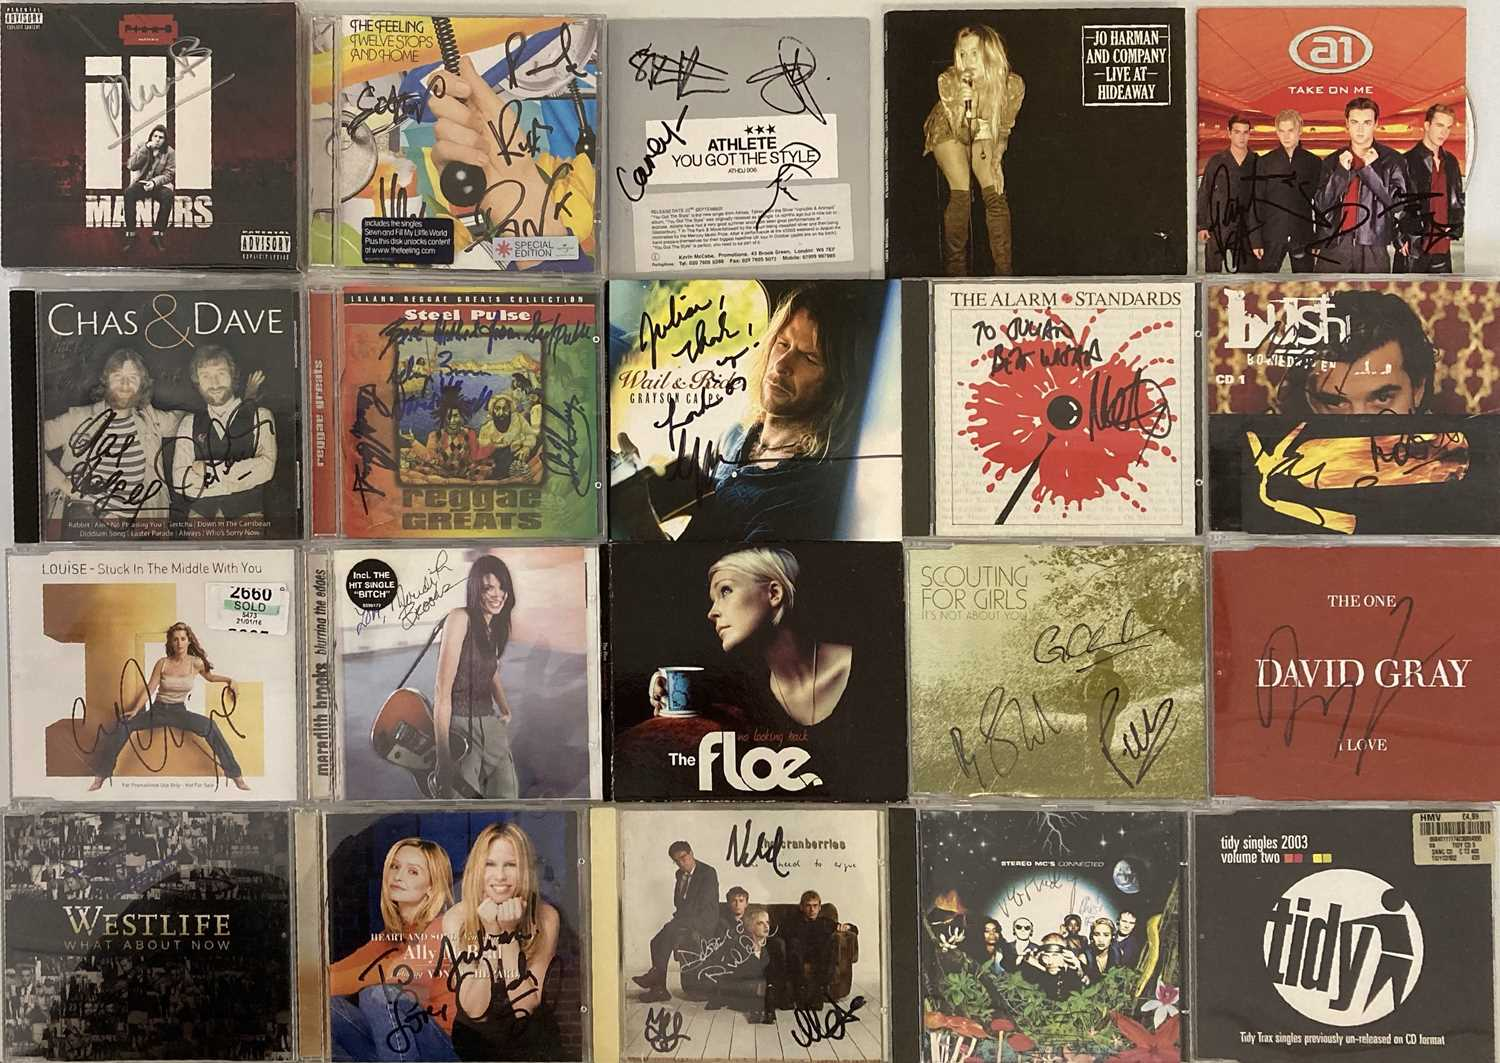 SIGNED CDS / LPS - THE CLASH / DEPECHE MODE AND MORE. - Image 10 of 12